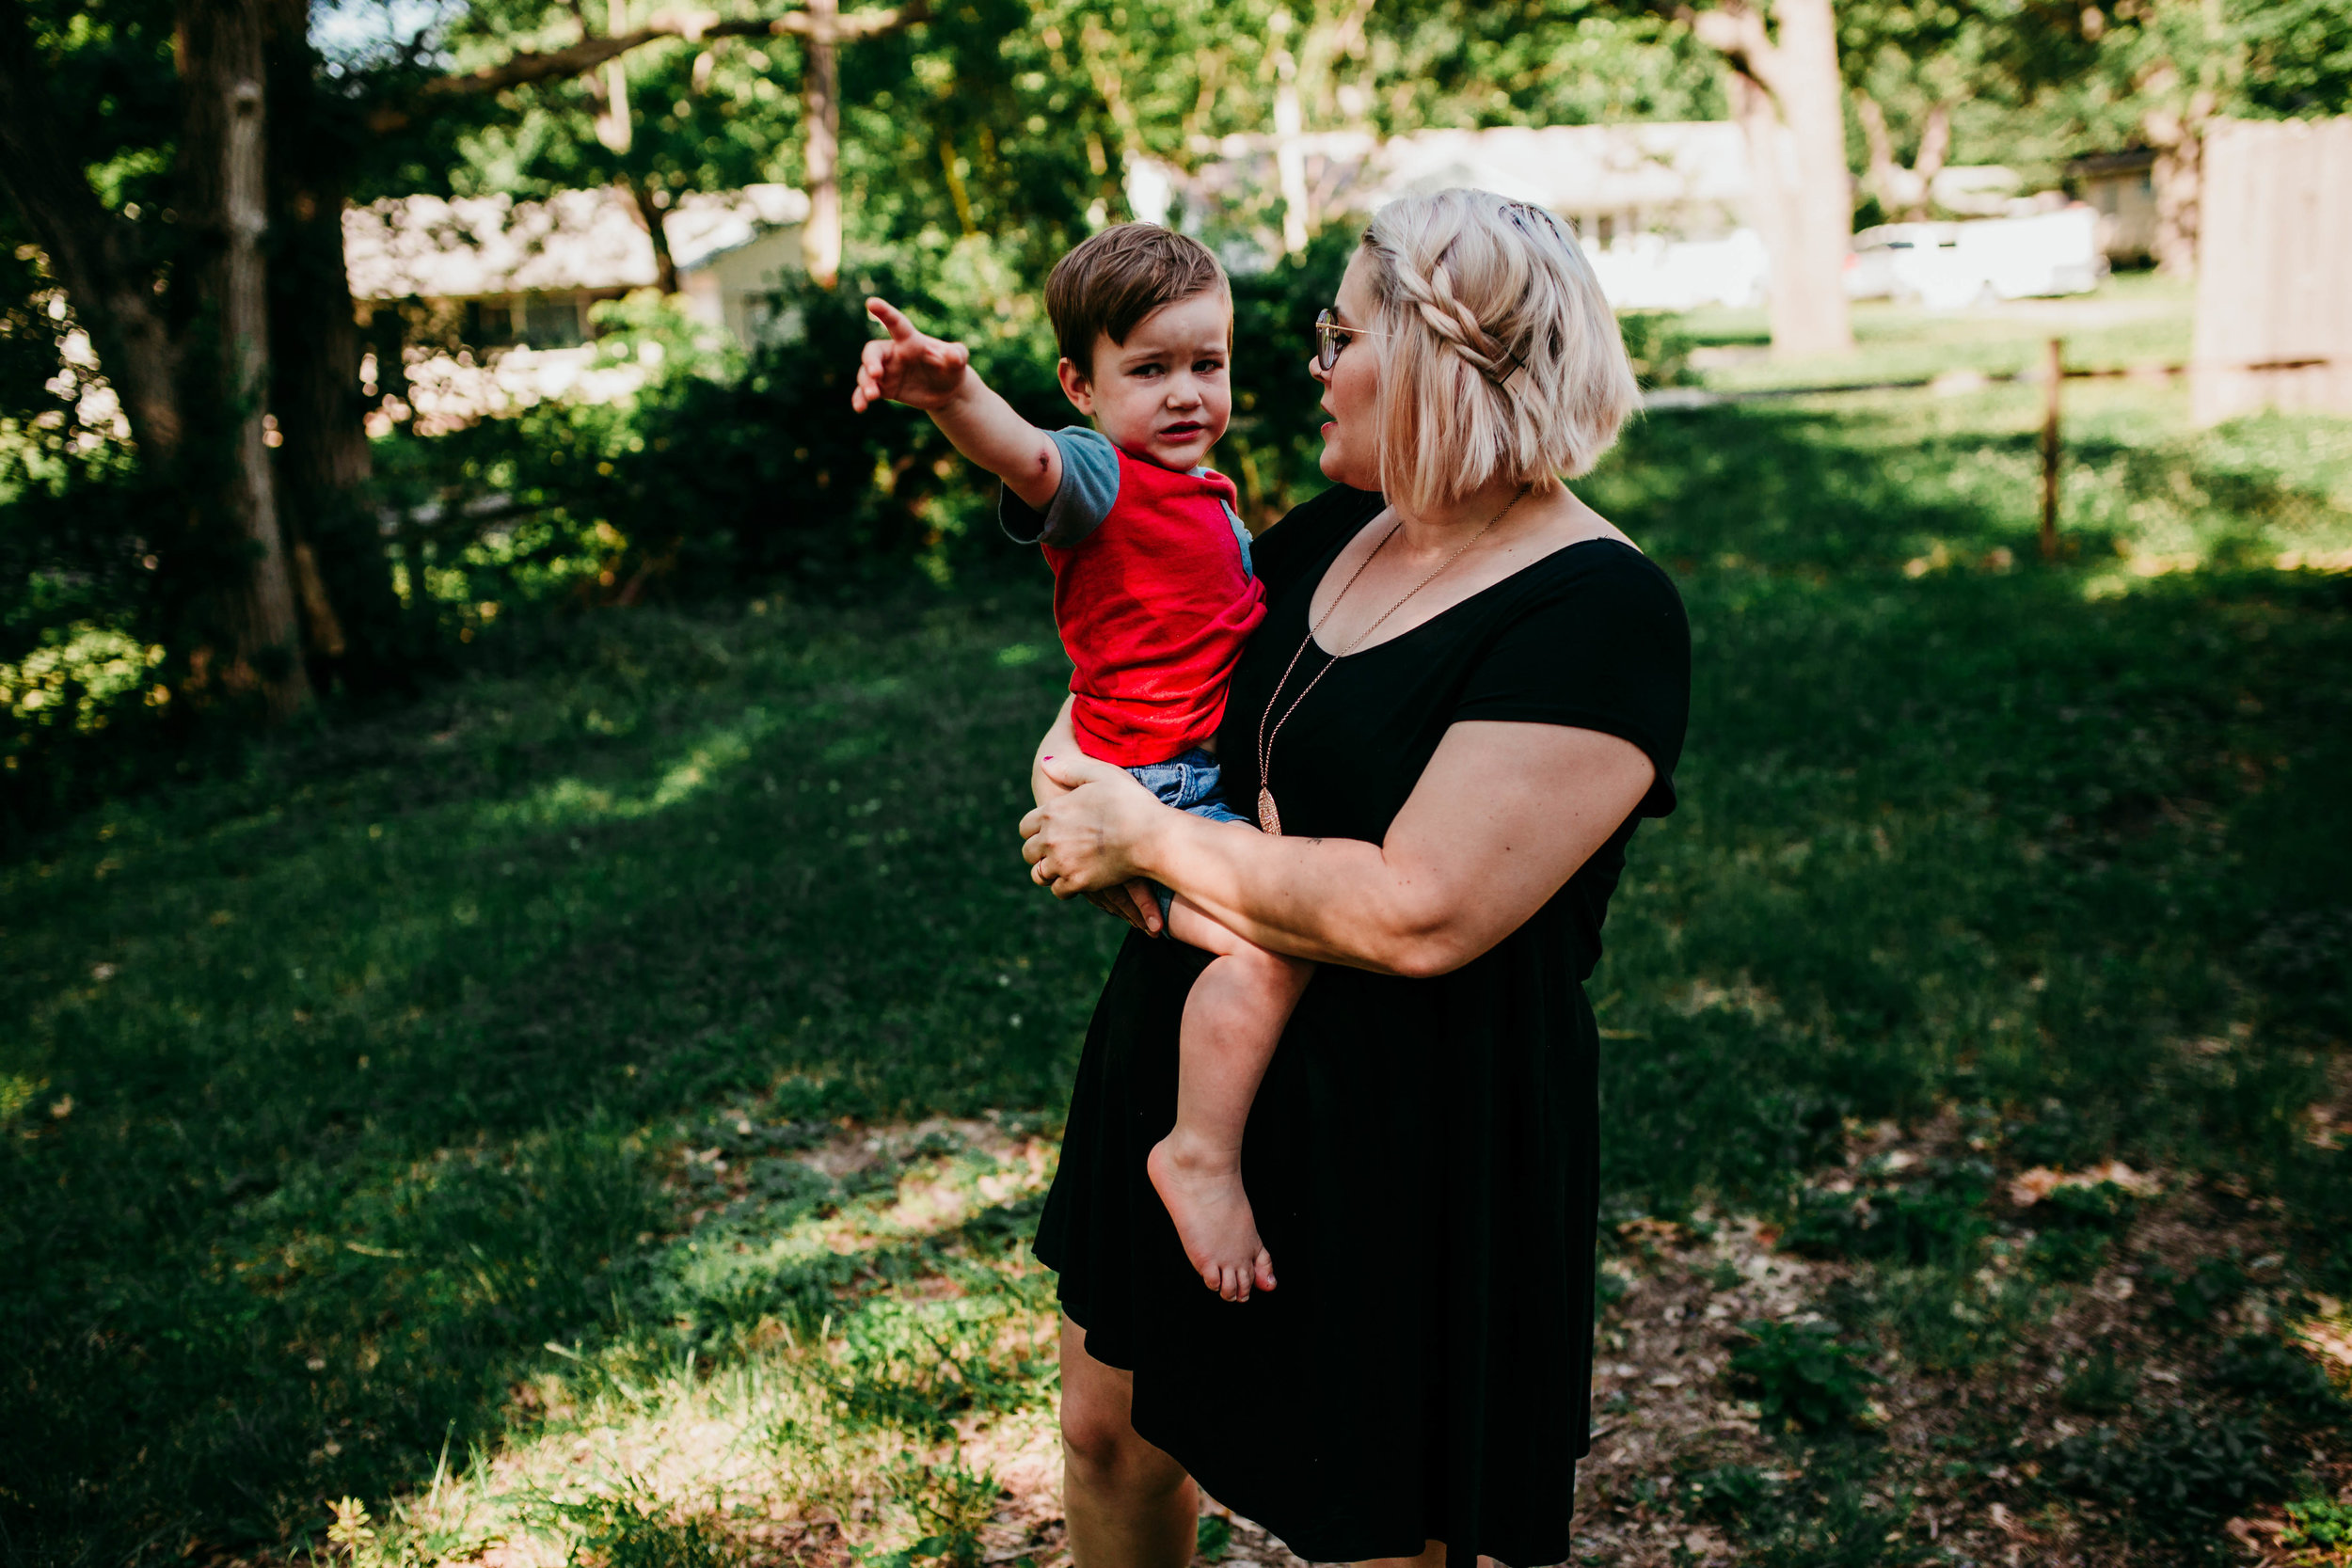 Mom comforts her youngest in the backyard  The Carter Family : Summer in the Backyard | Hannahill Photography | Kansas City, MO | Family photography lifestyle photographer | Wedding photographer Durham North Carolina Raleigh | Birth photographer Documentary